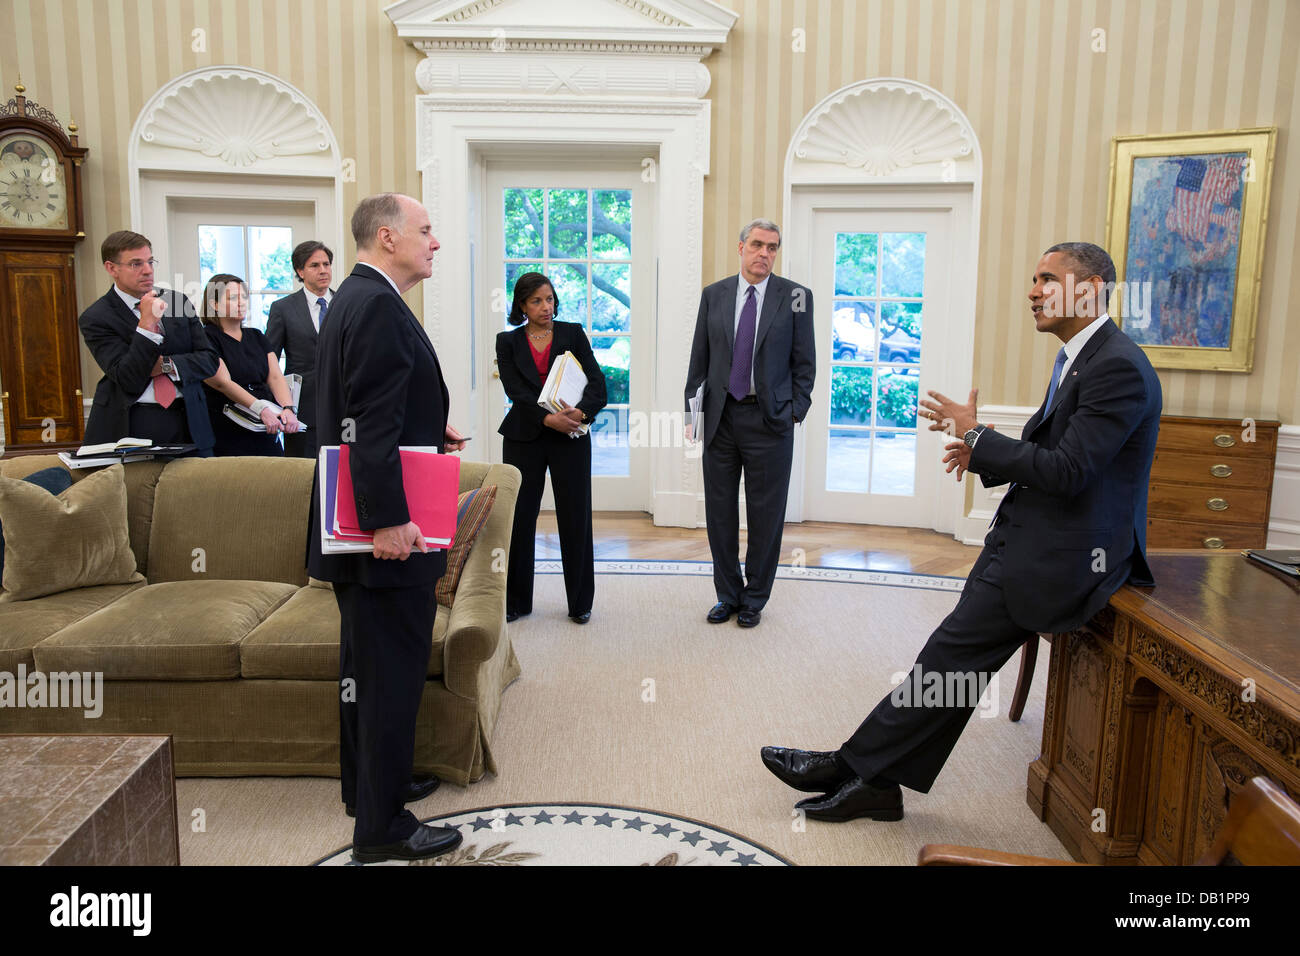 US President Barack Obama talks with advisors in the Oval Office June 25, 2013 in Washington, DC. Pictured, from - Stock Image